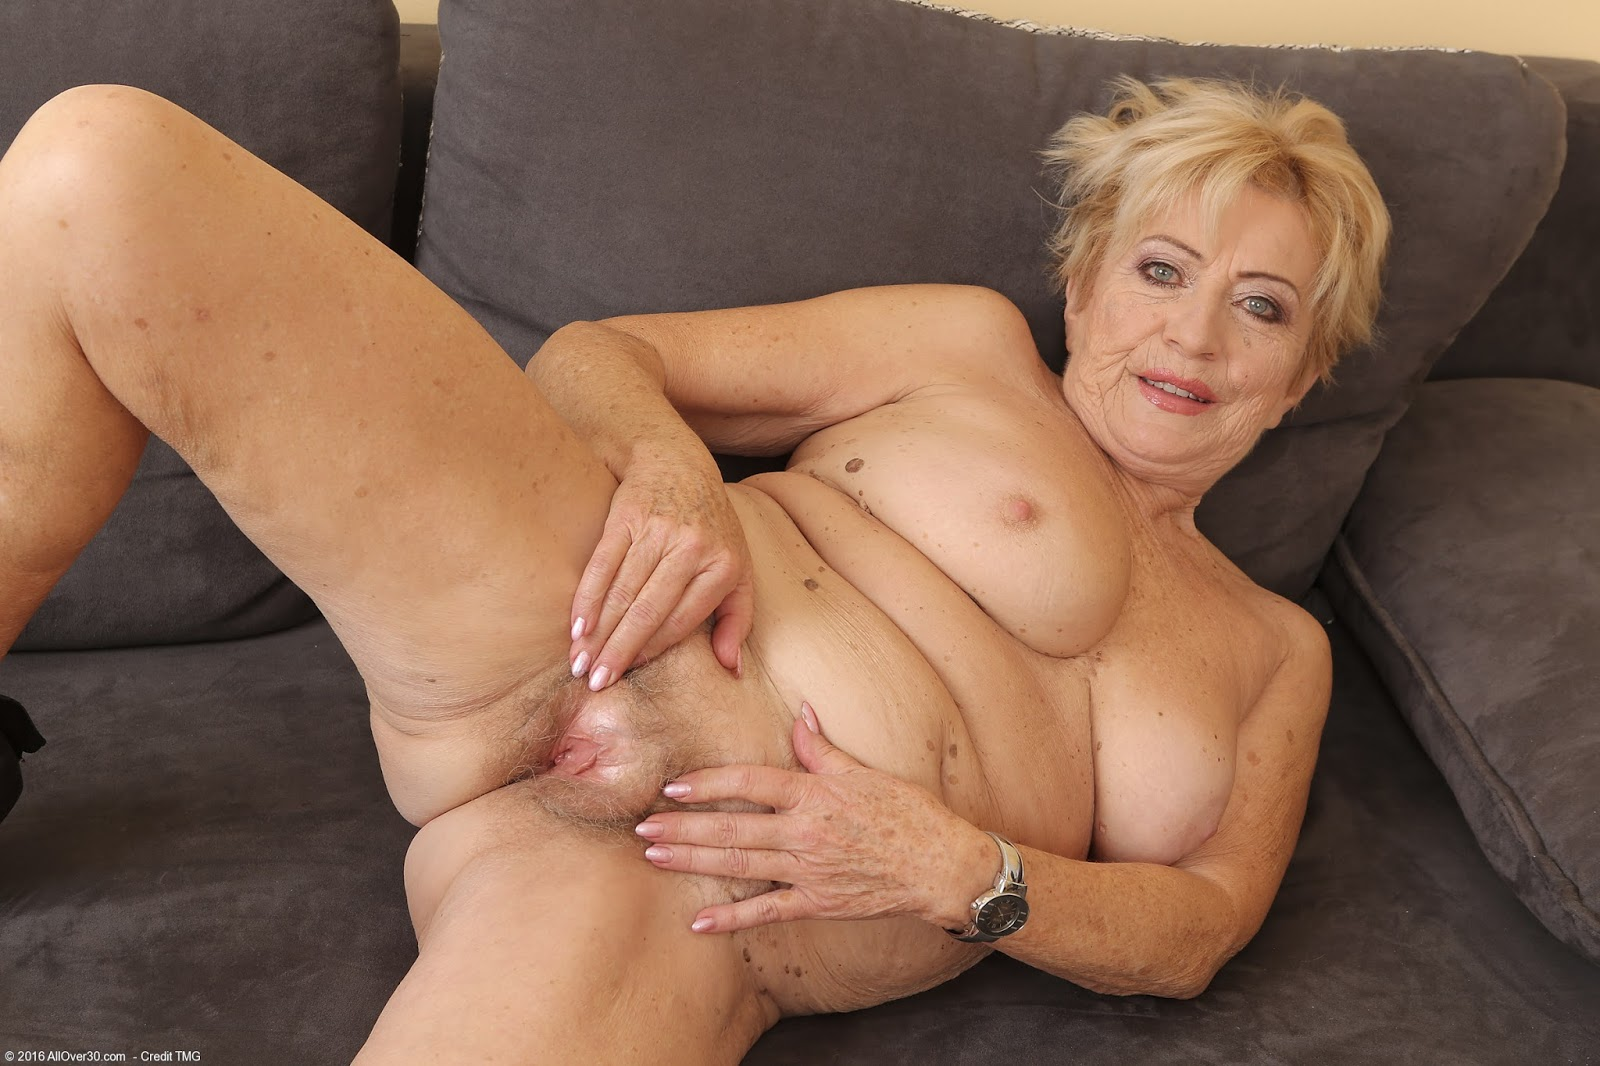 granddaughter with hand on grandmothers naked cunt - miyabi porn